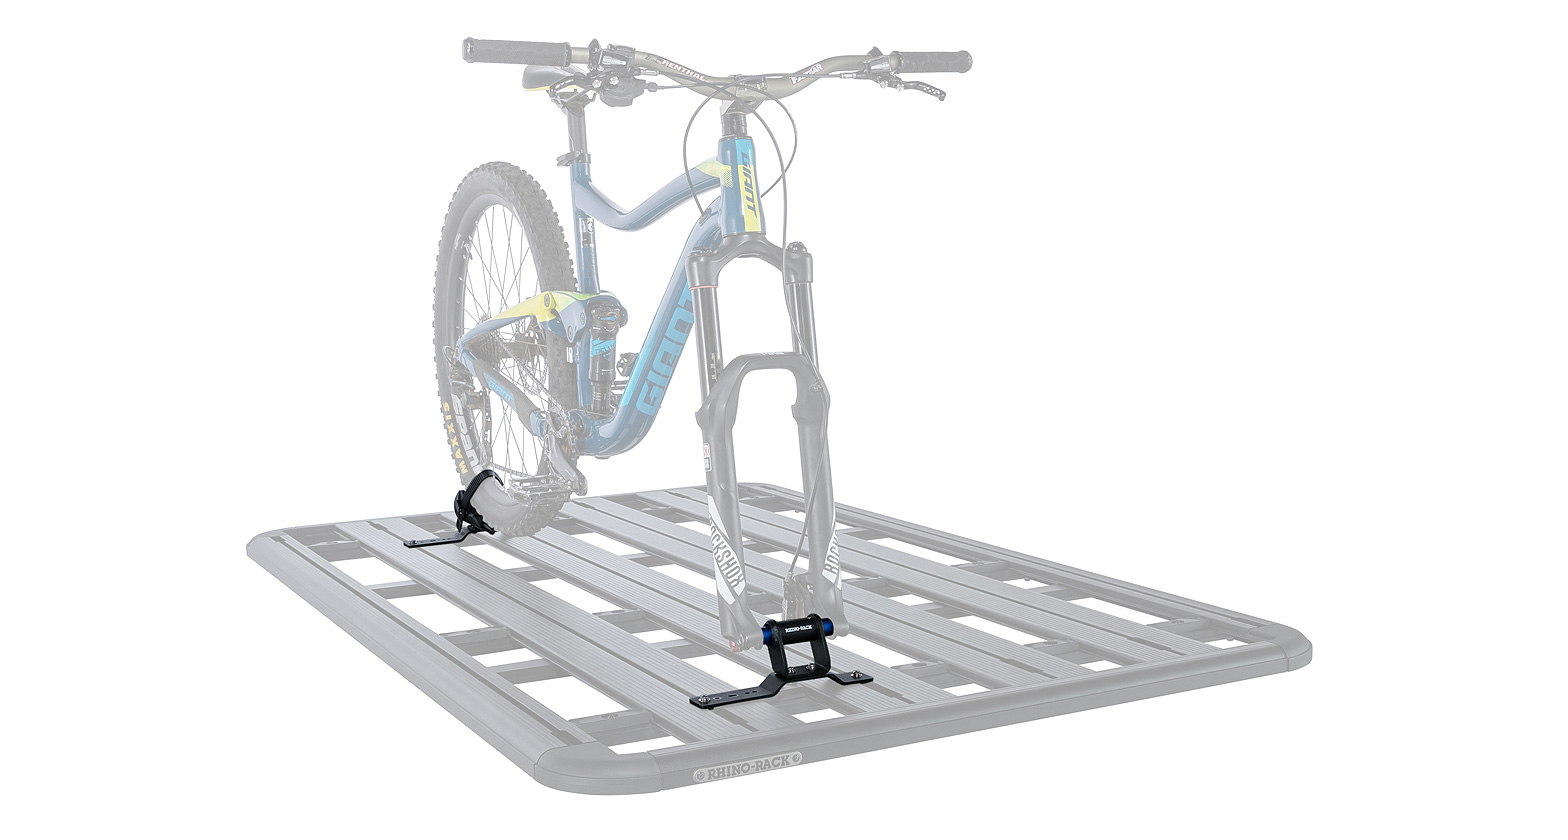 Rhino-Rack ioneer Thru Axle Bike Carrier